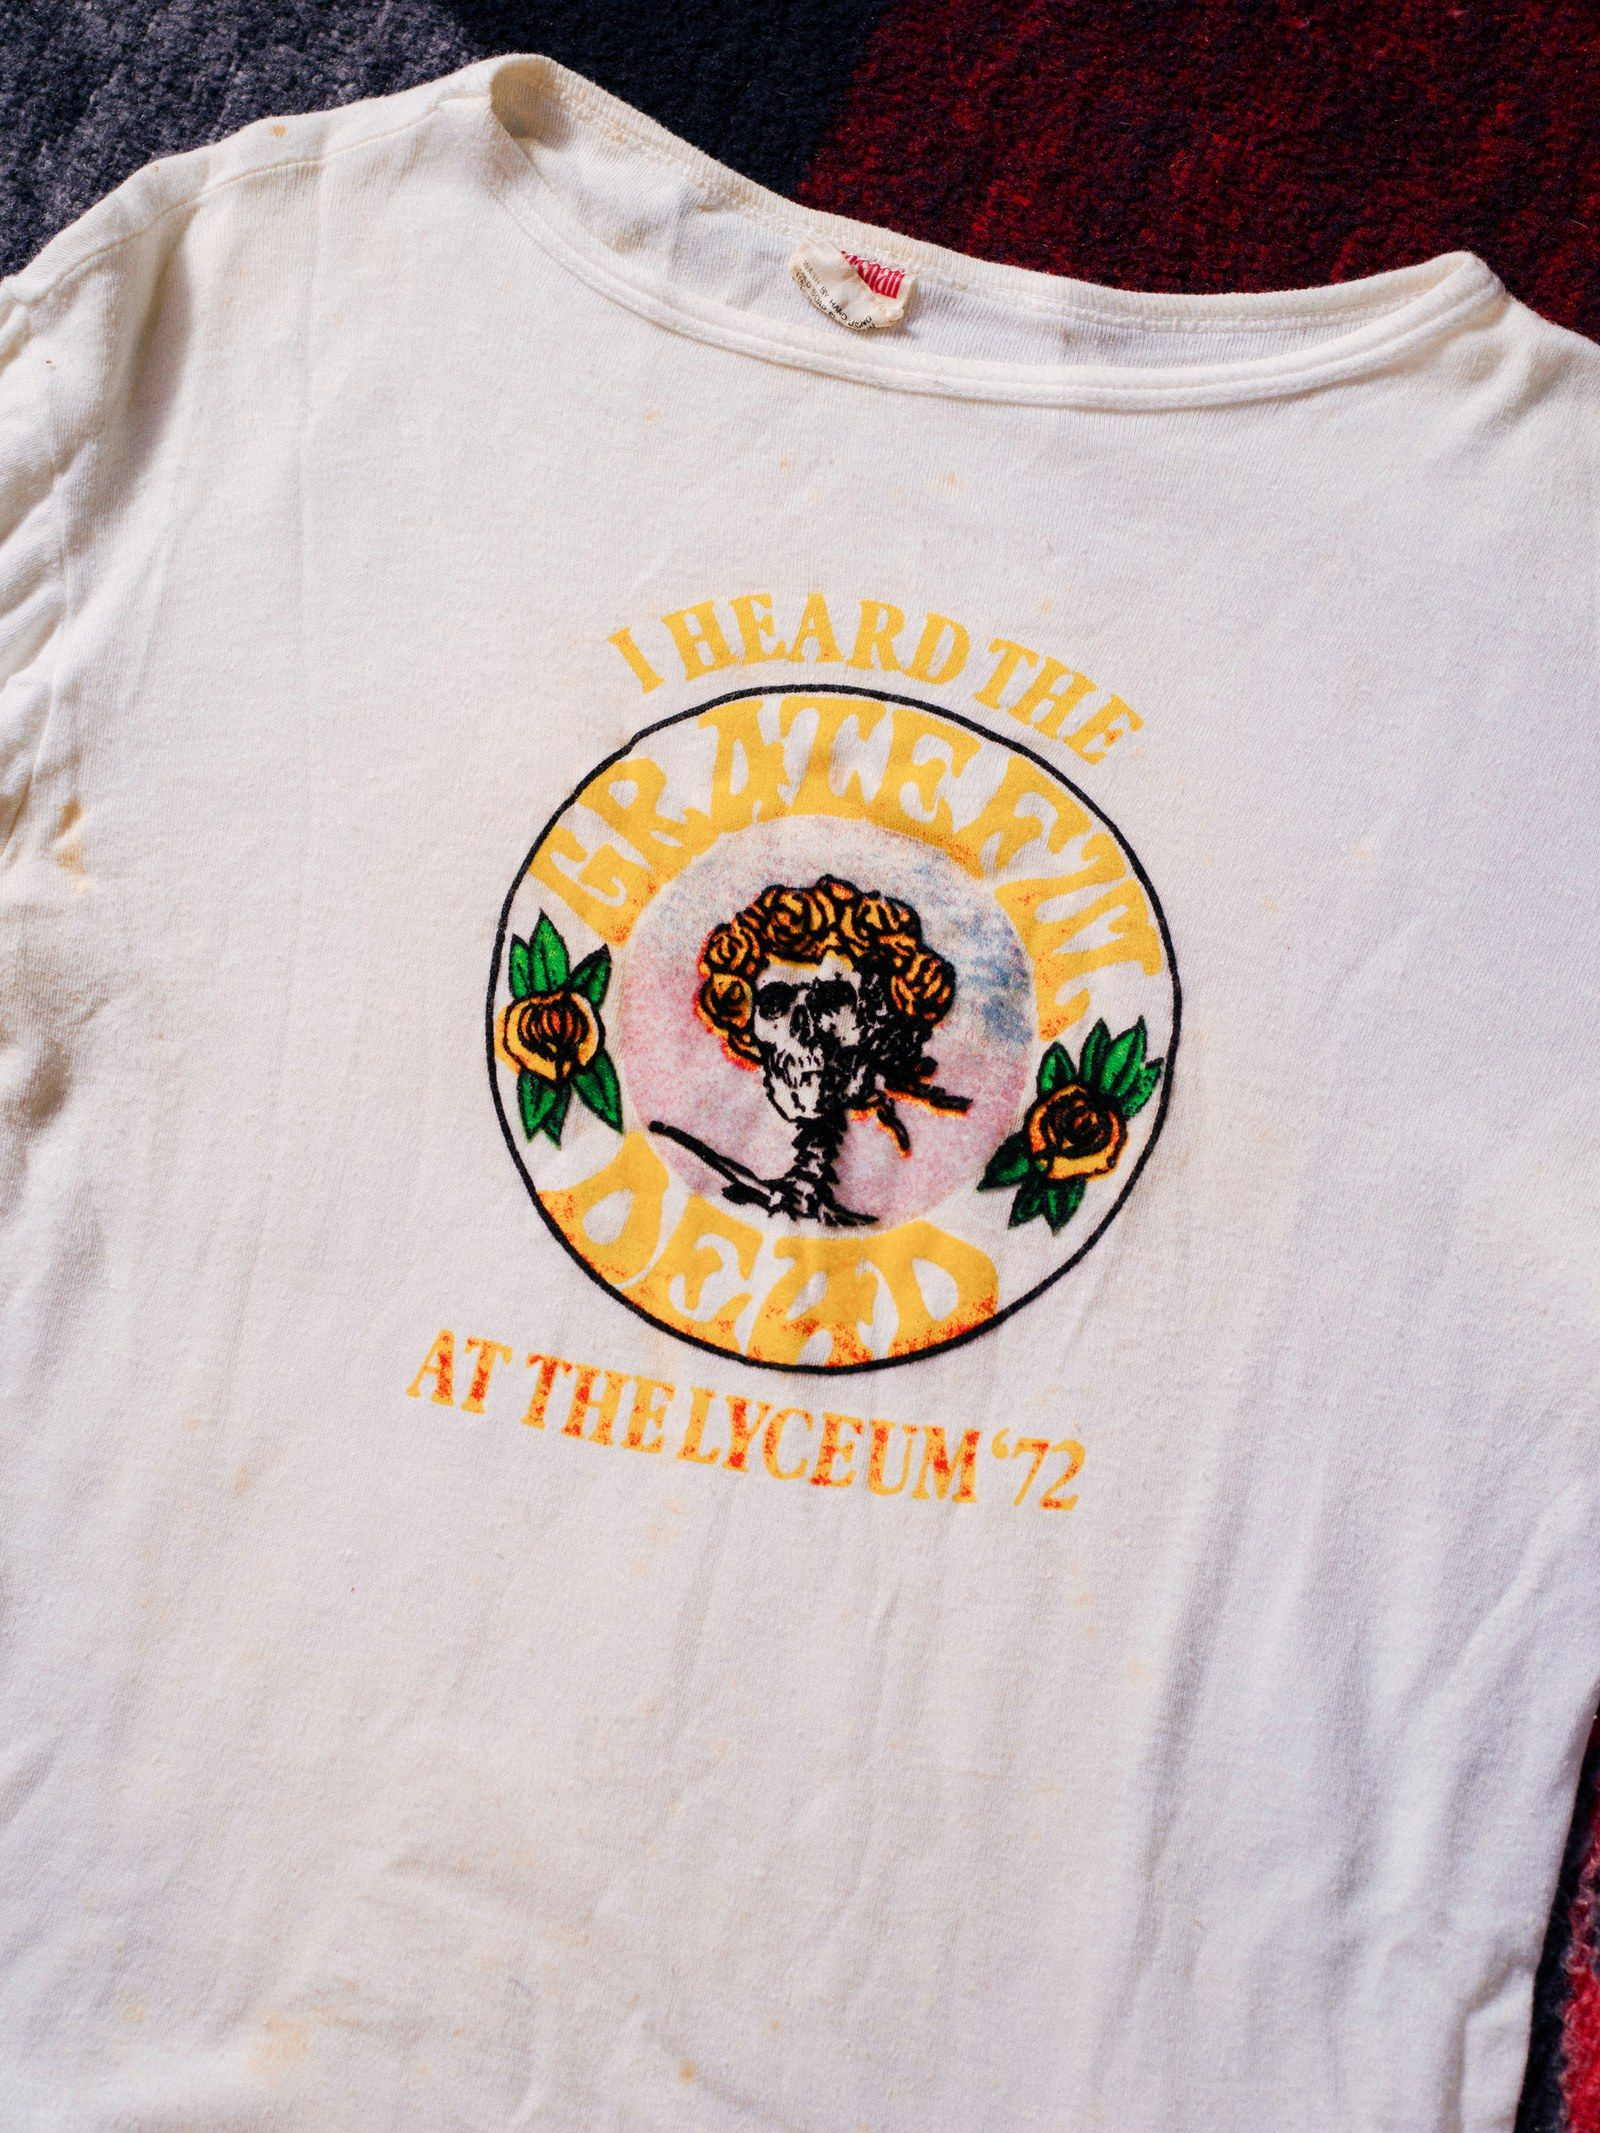 d1033da22 A recovered gem from the Dan Healy T-shirt archive, commemorating the four  Lyceum shows that concluded the Grateful Dead's first-ever European tour.